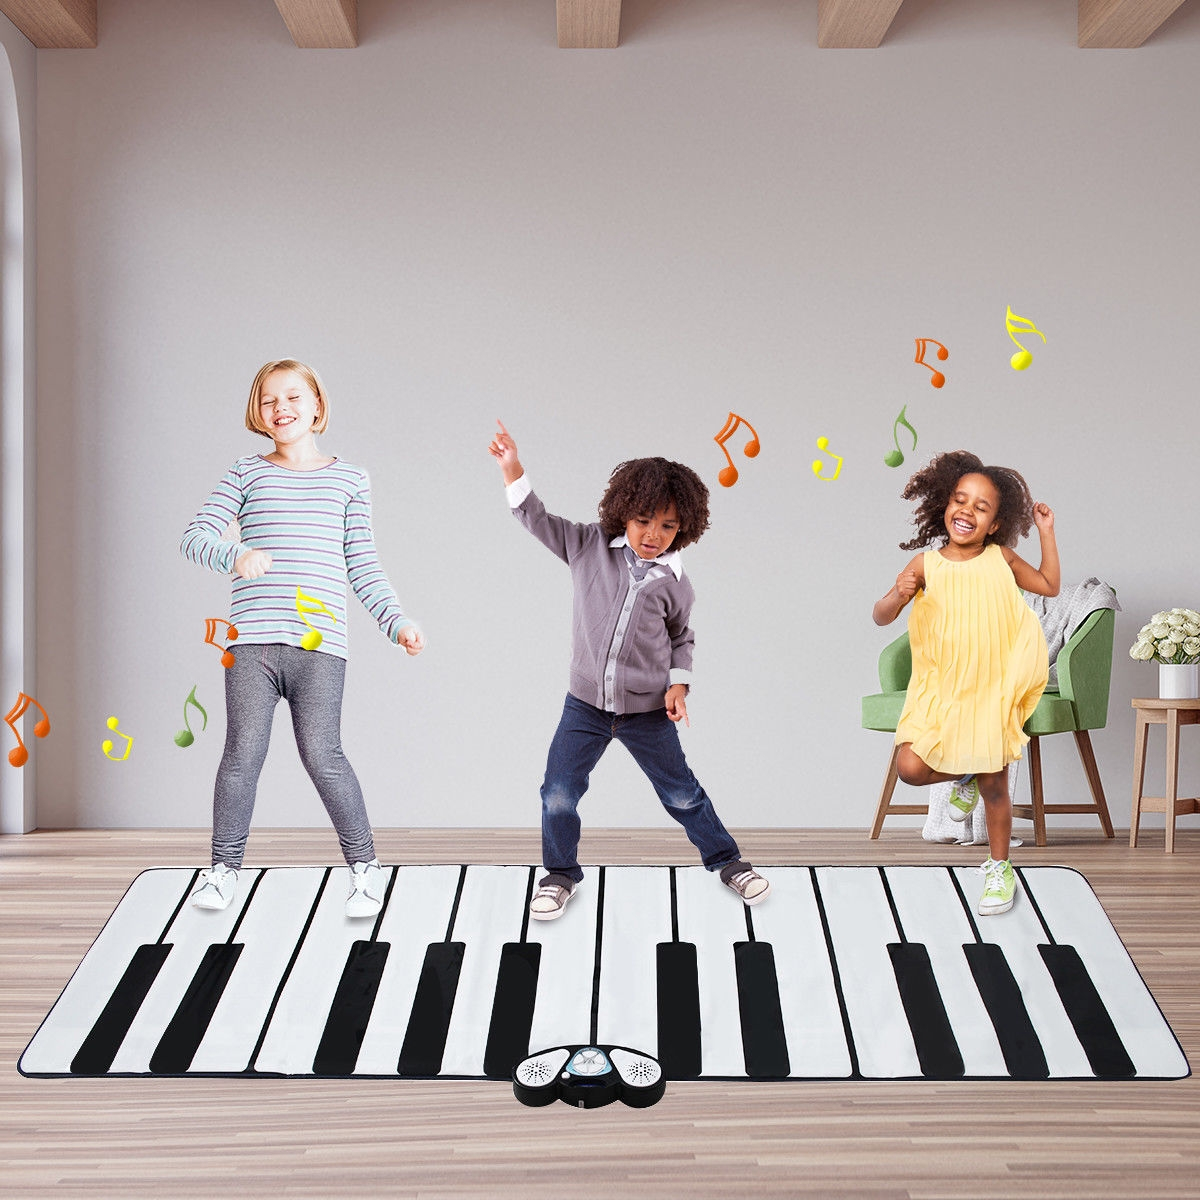 24 Key Gigantic Piano Keyboard with 9 Instrument Settings